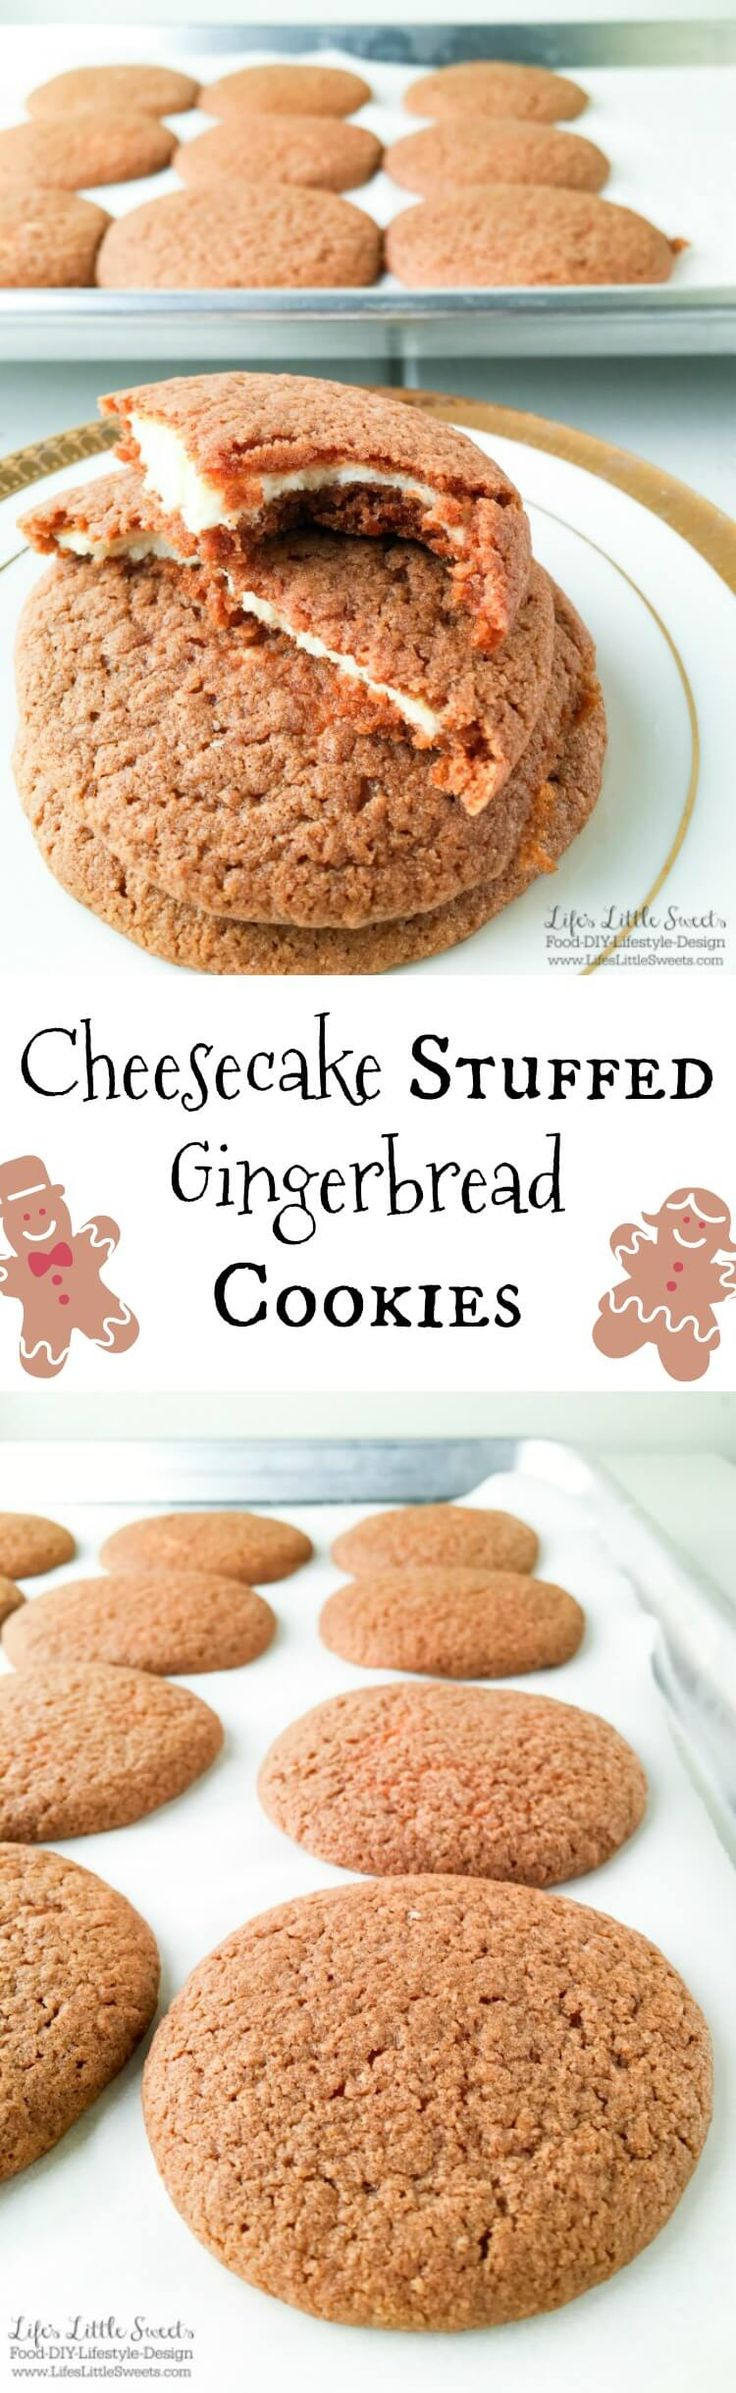 #gingerbread #cookies #cheesecake